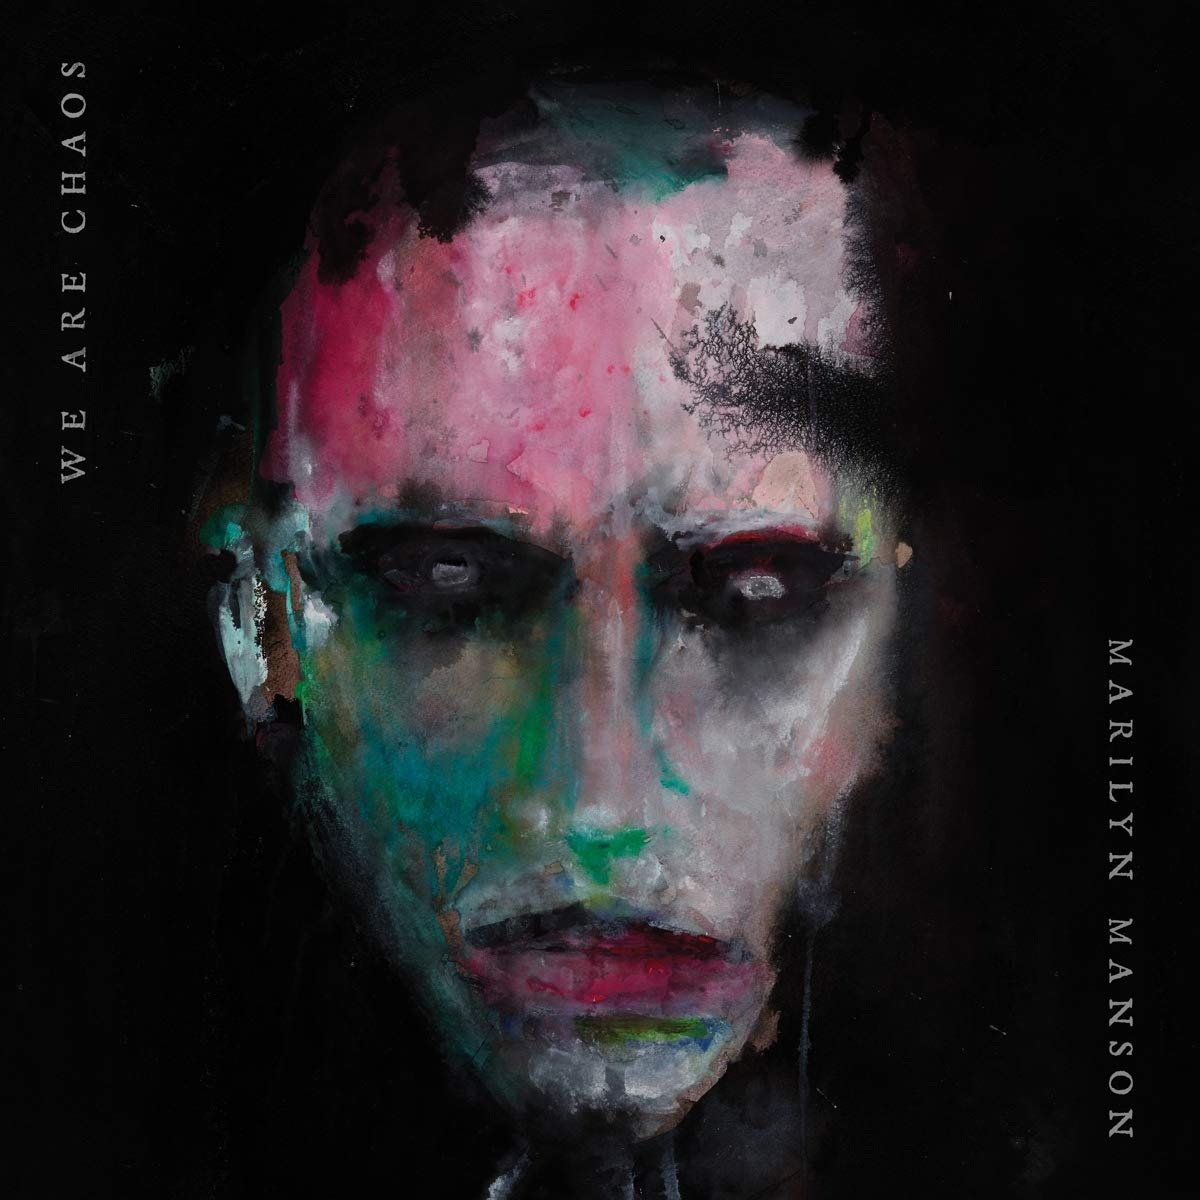 Marilyn Manson - 'We Are Chaos' LP (including 24x24 poster).